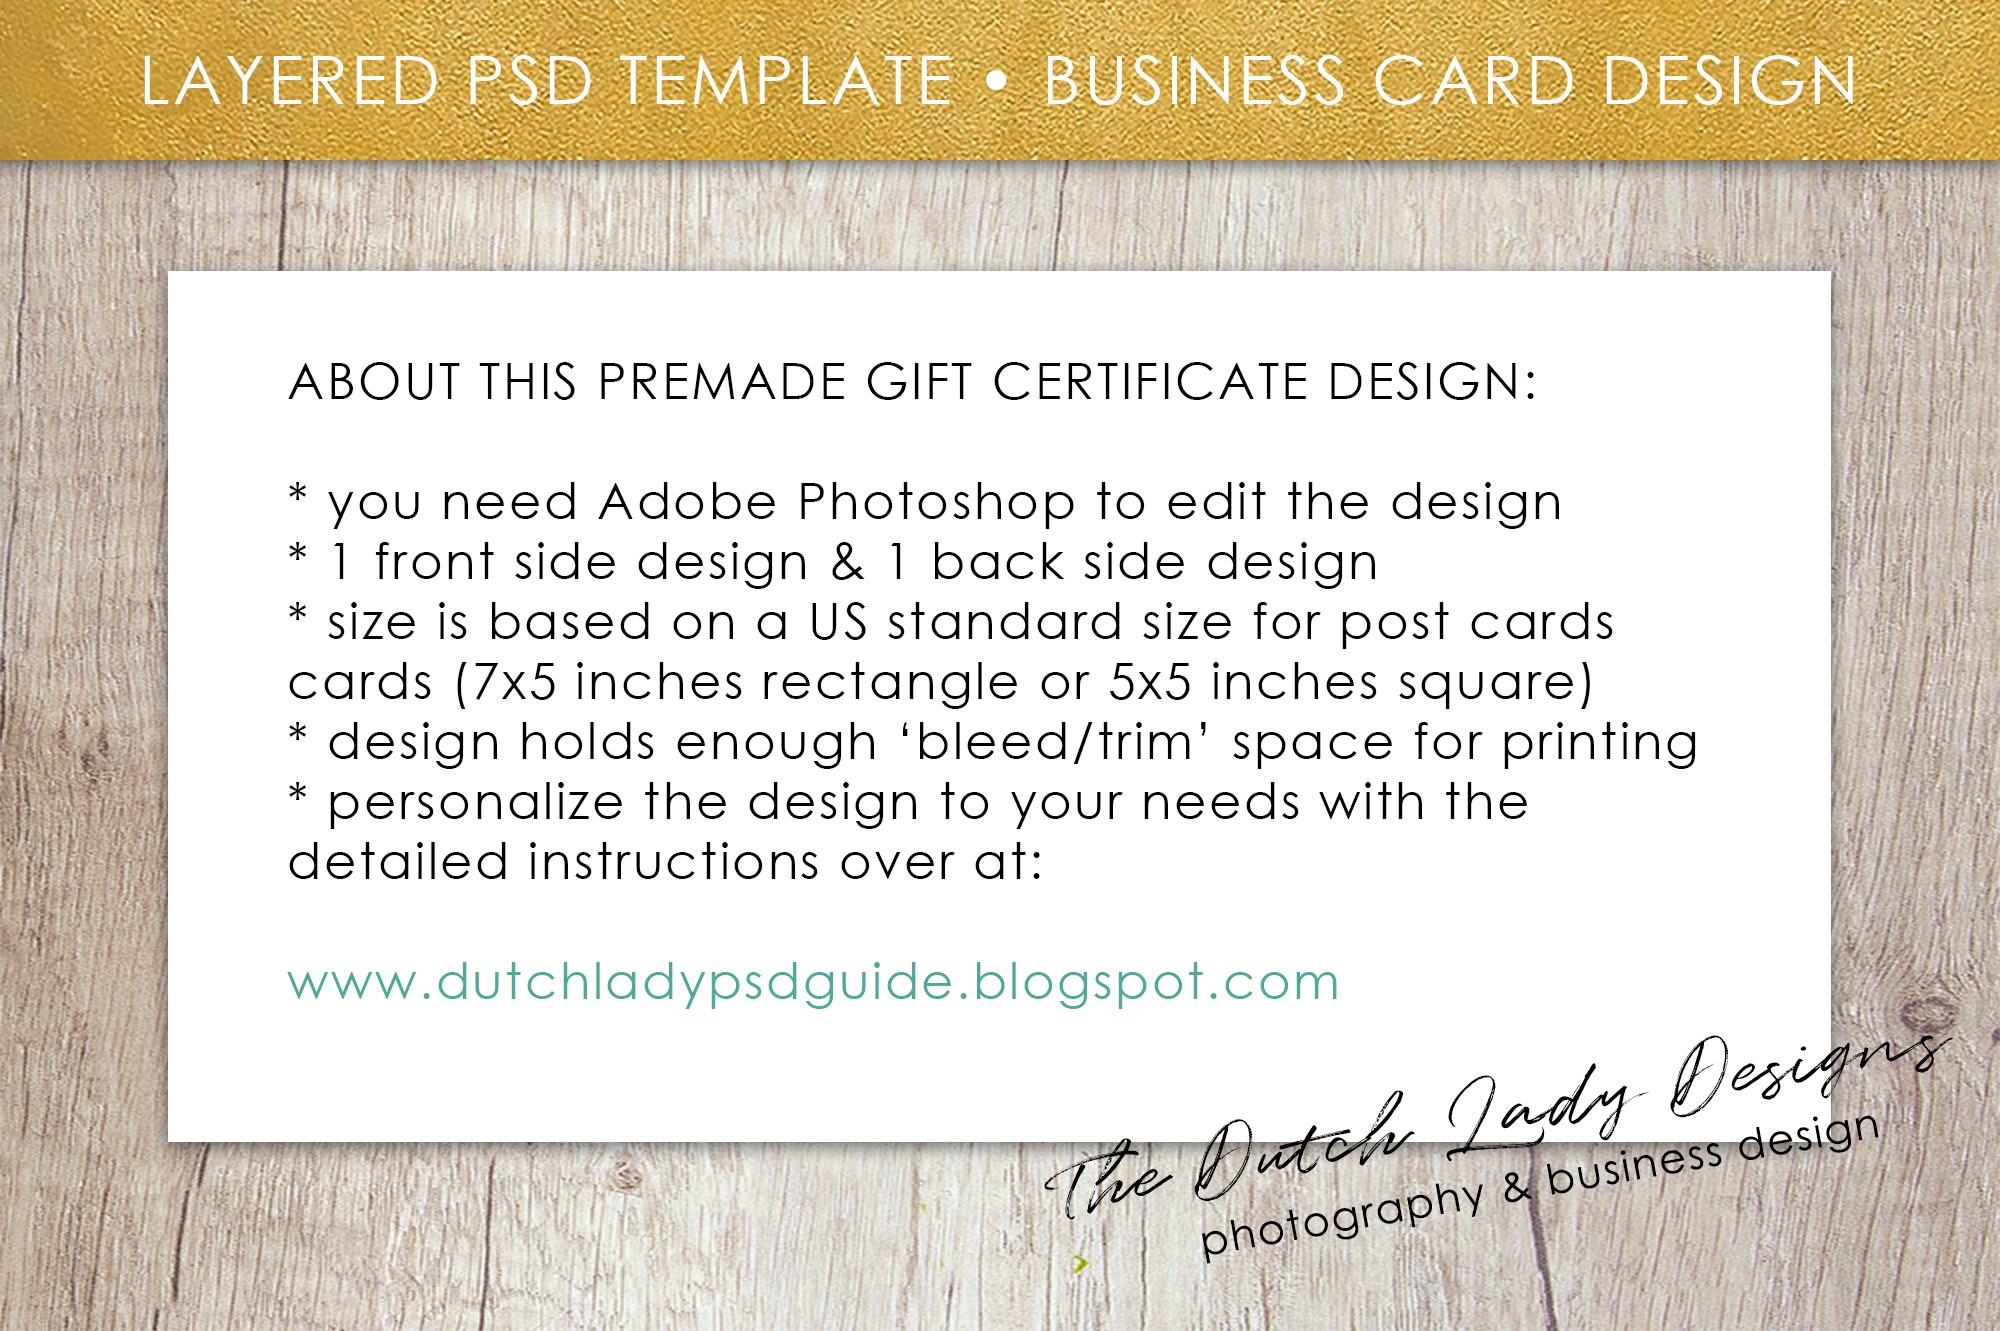 Photo gift card template for adobe phot design bundles photo gift card template for adobe photoshop layered psd template design 40 example yelopaper Images